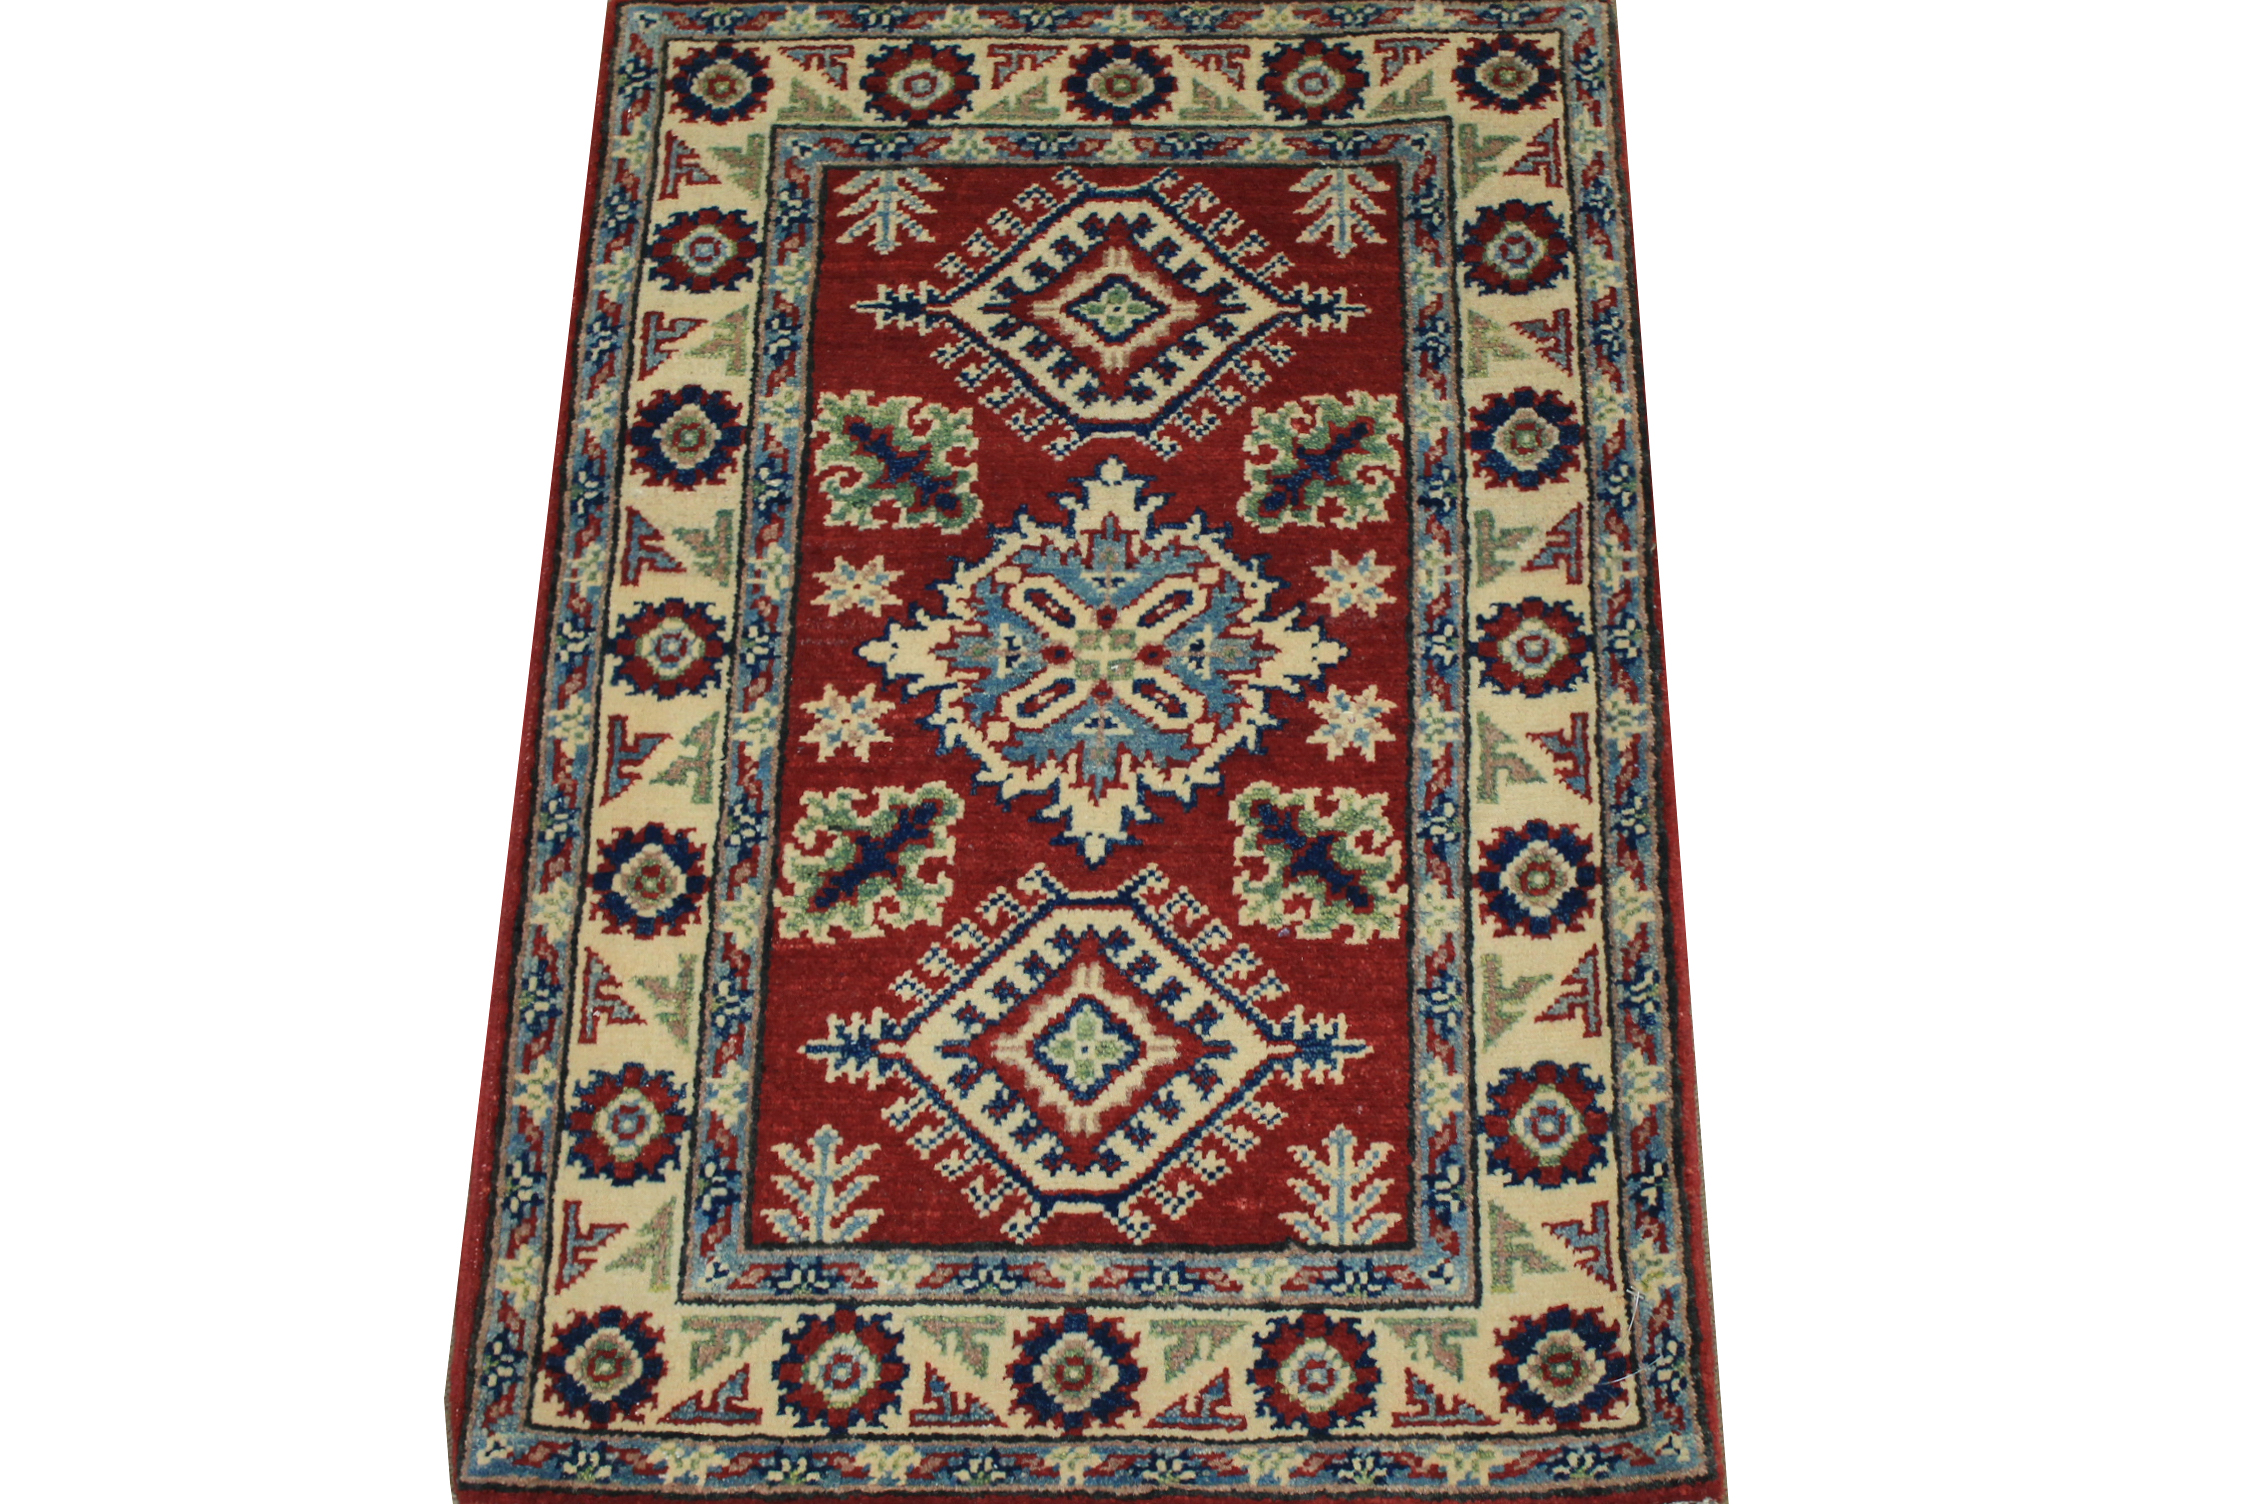 2X3 Kazak Hand Knotted Wool Area Rug - MR024534